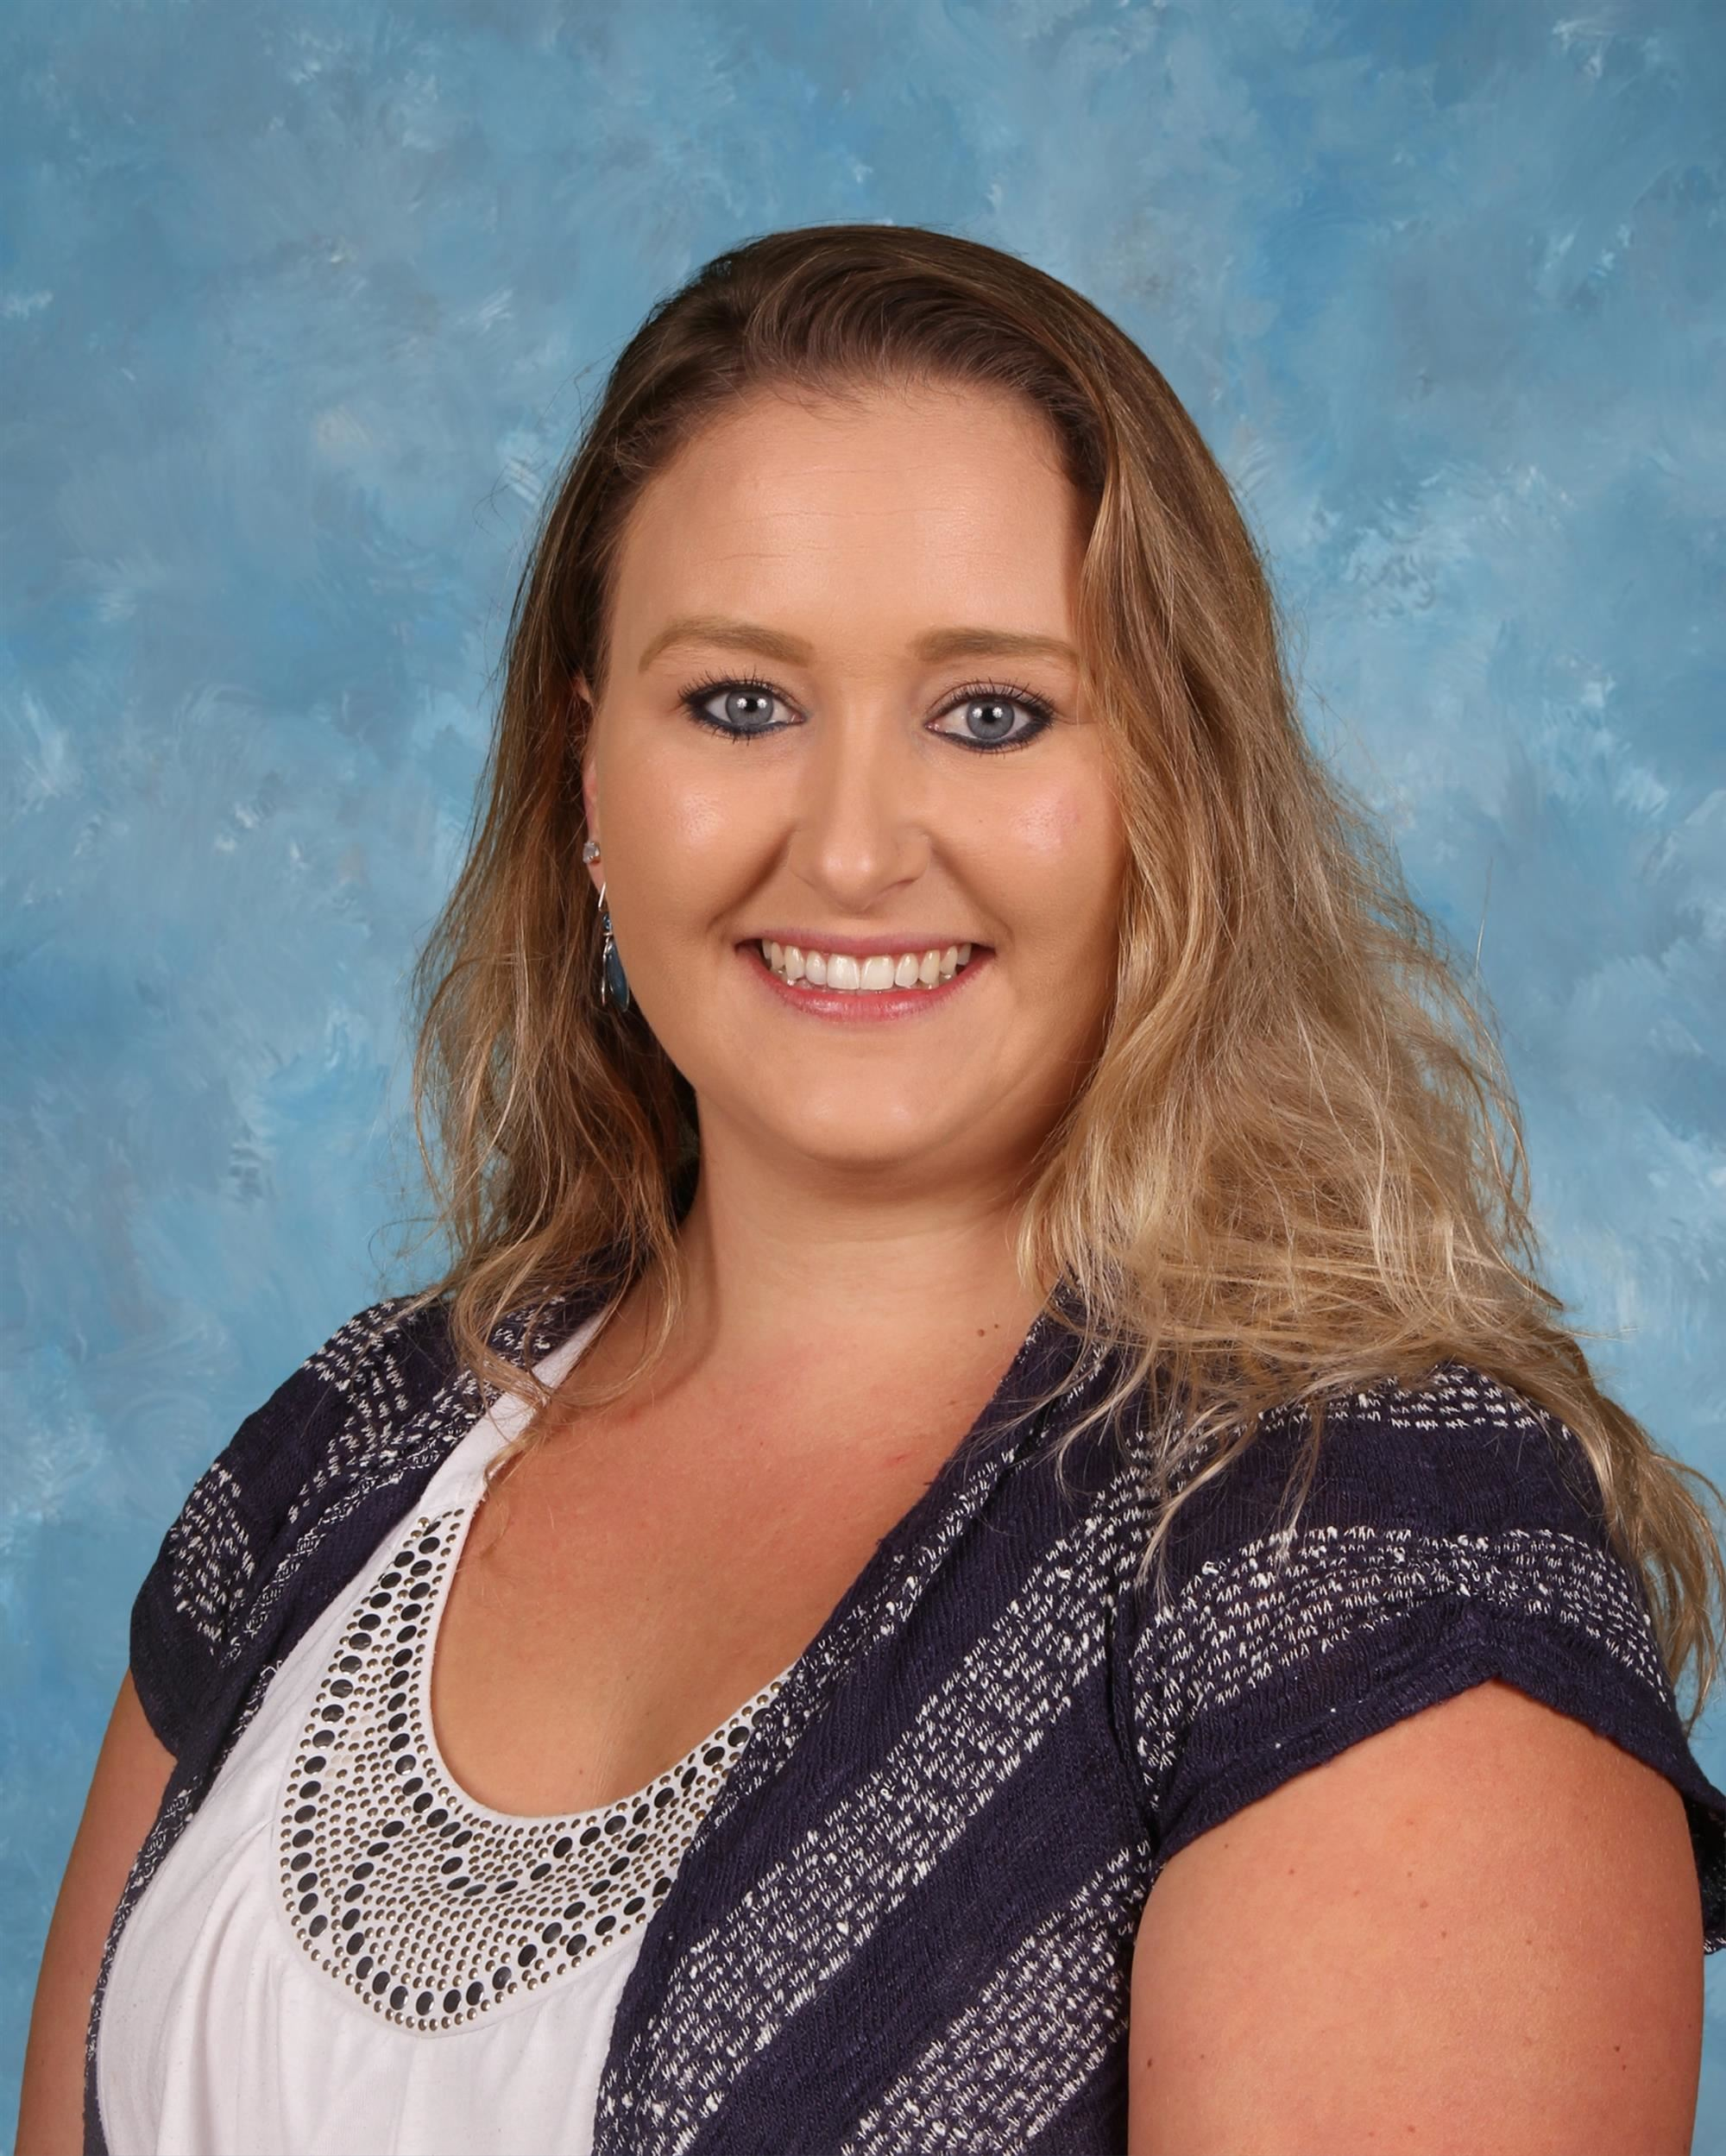 Heather Siino Wickiser - Instructional Aide